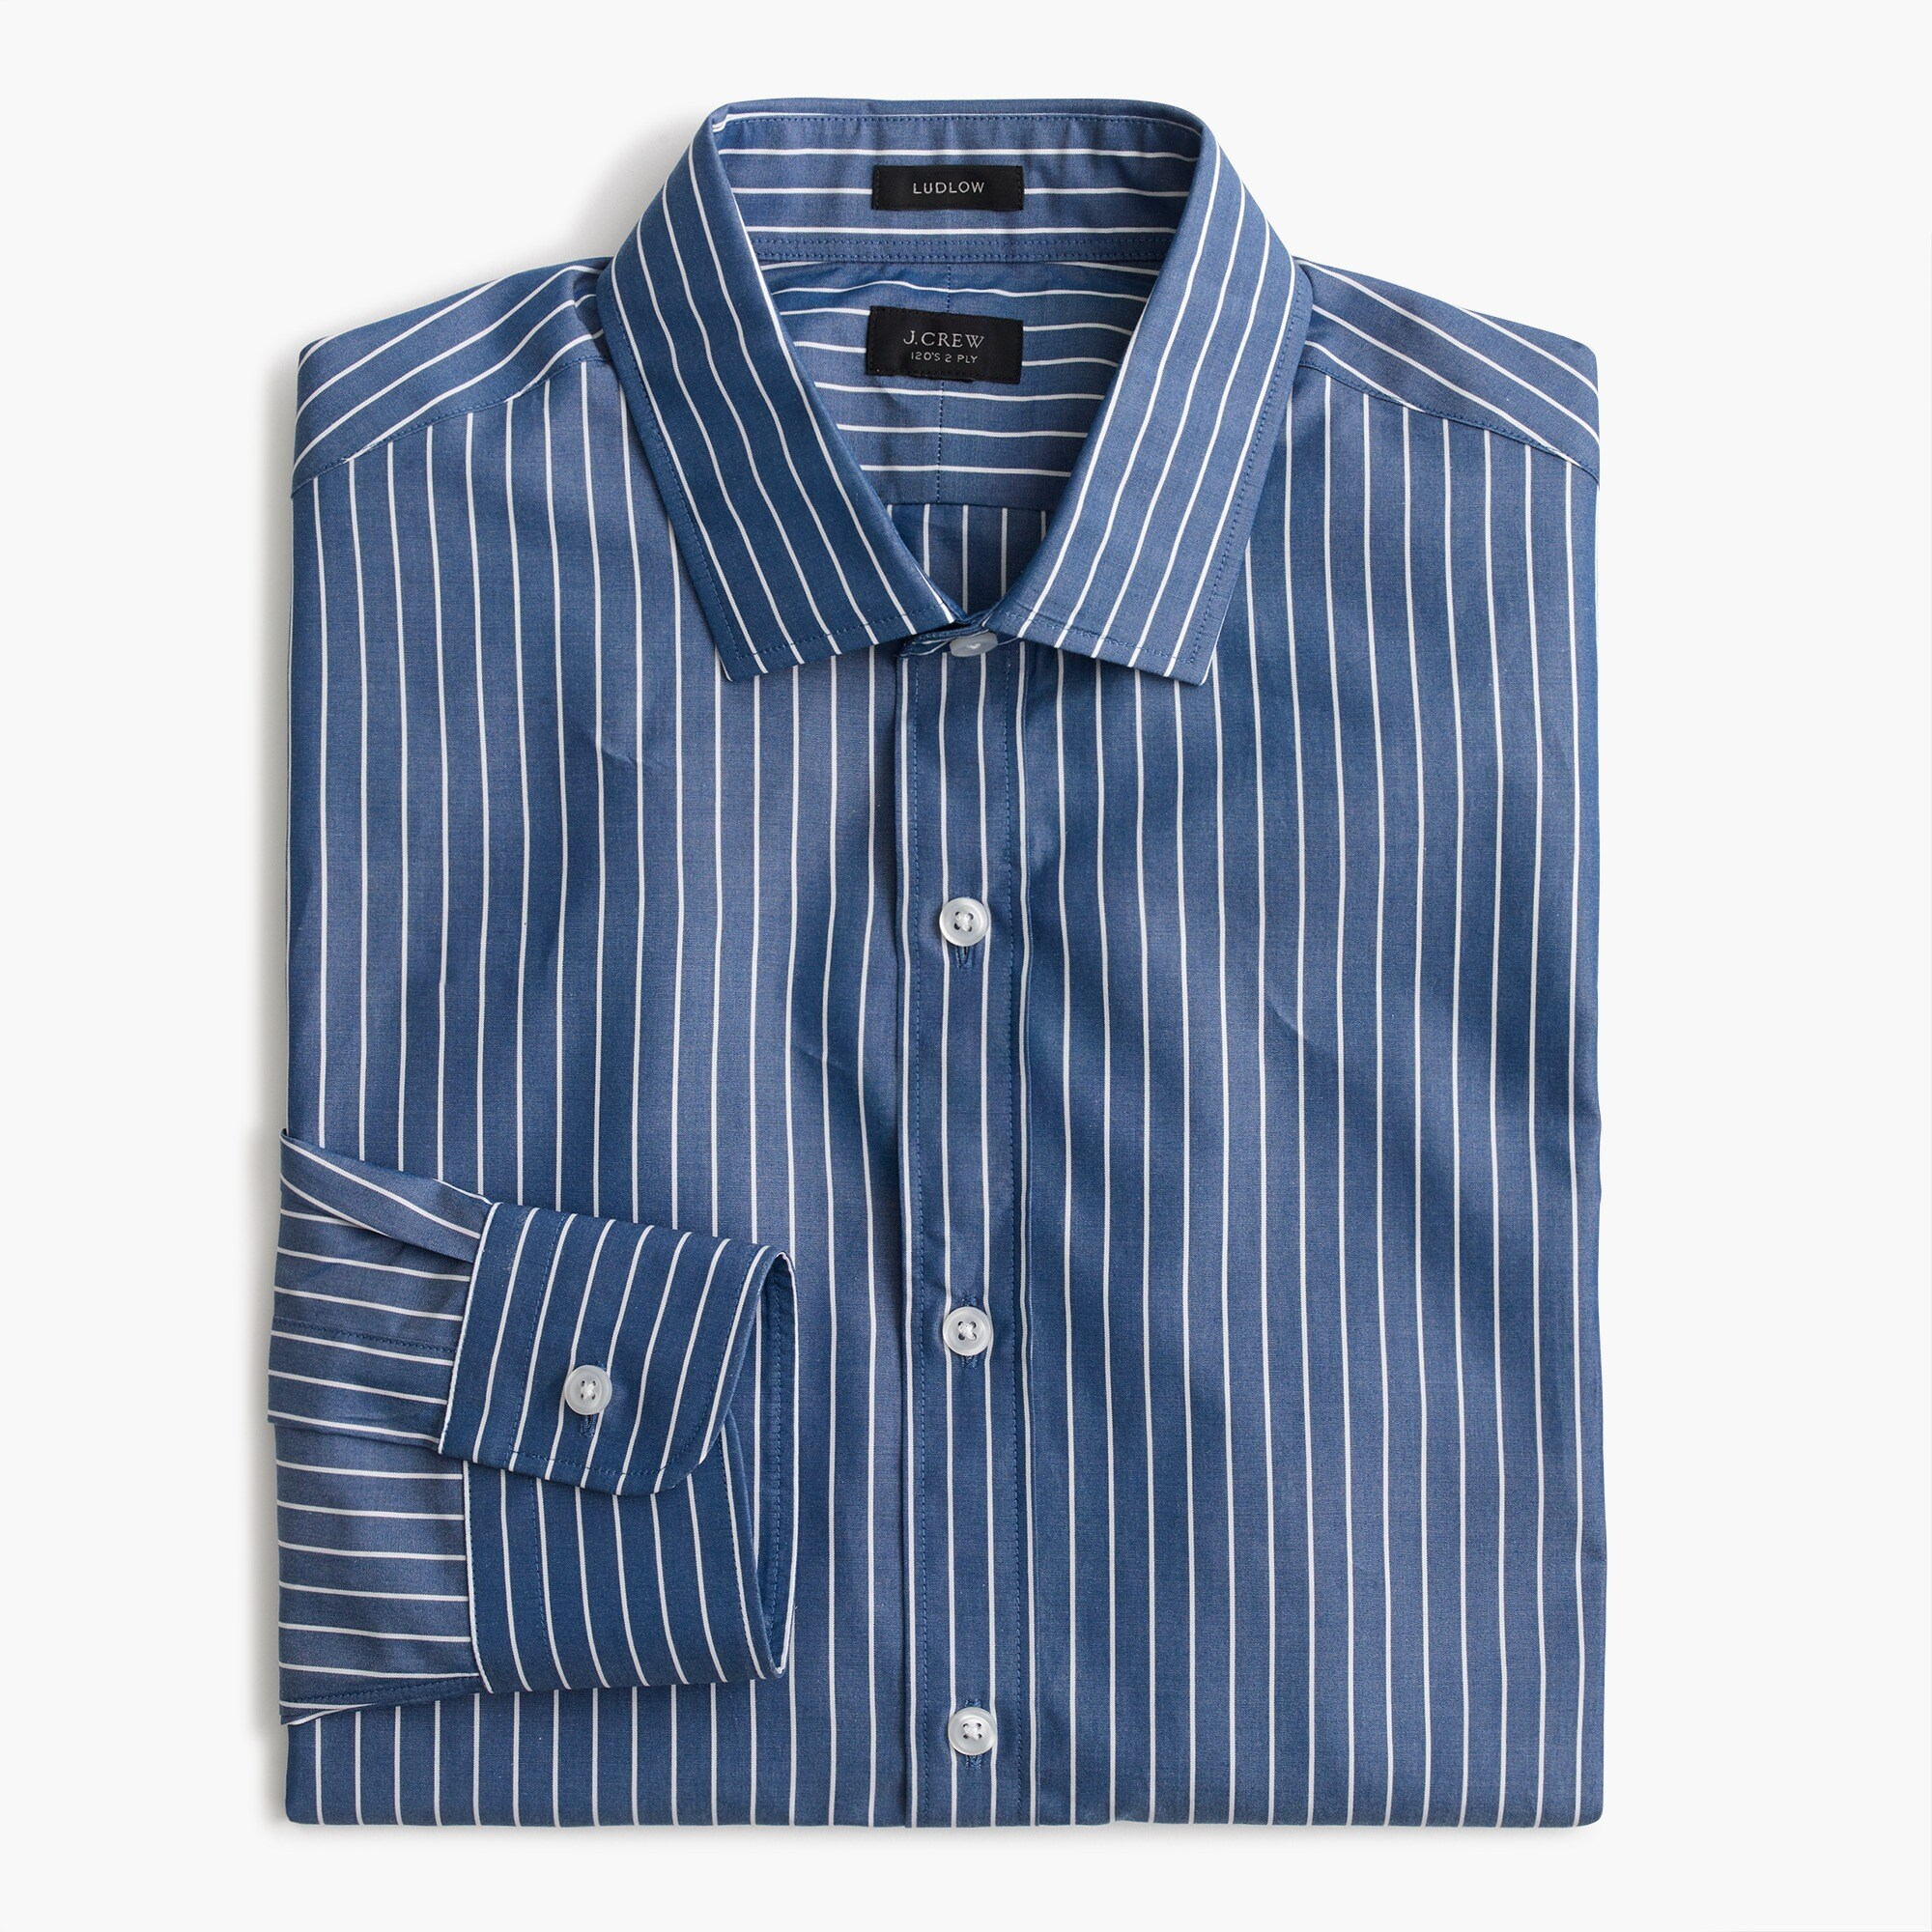 ludlow slim-fit shirt in blue and white stripe : men dress shirts